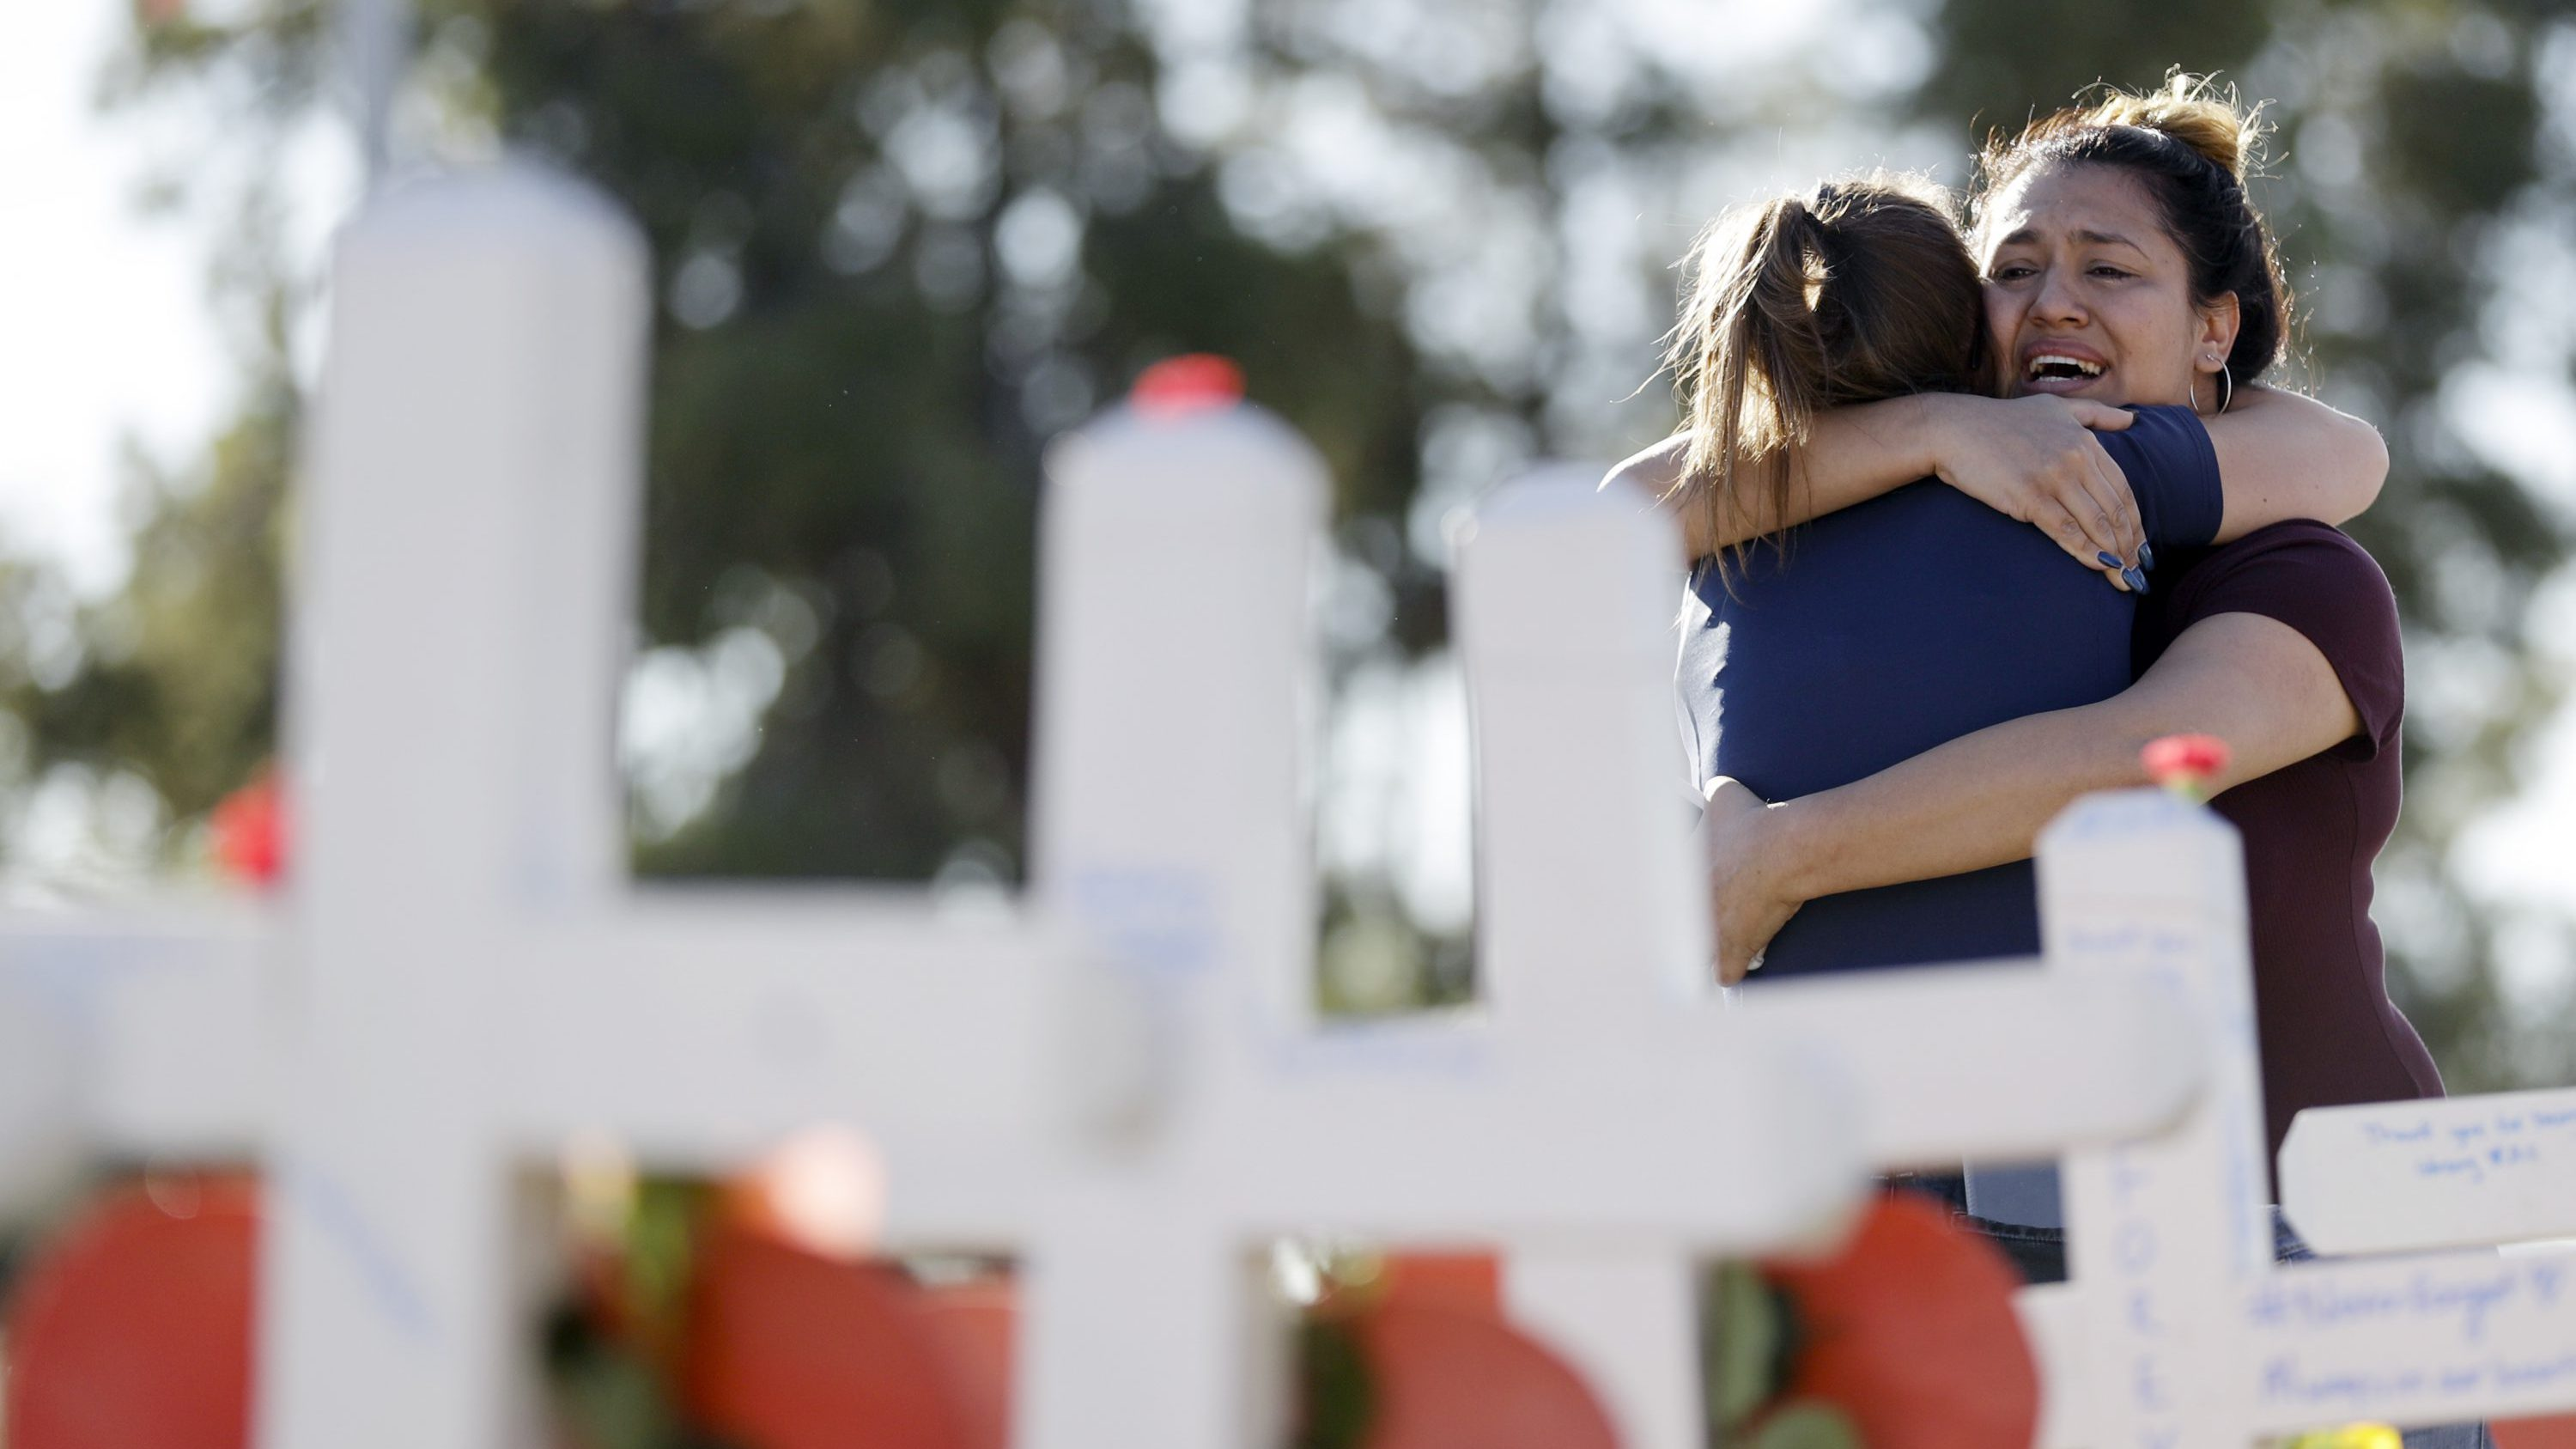 Melissa Gerber, left, hugs Sandra Serralde, both of Las Vegas, as they visit crosses placed in honor of those killed in the mass shooting Friday, Oct. 6, 2017, in Las Vegas. A gunman opened fire on an outdoor music concert on Sunday killing dozens and injuring hundreds.